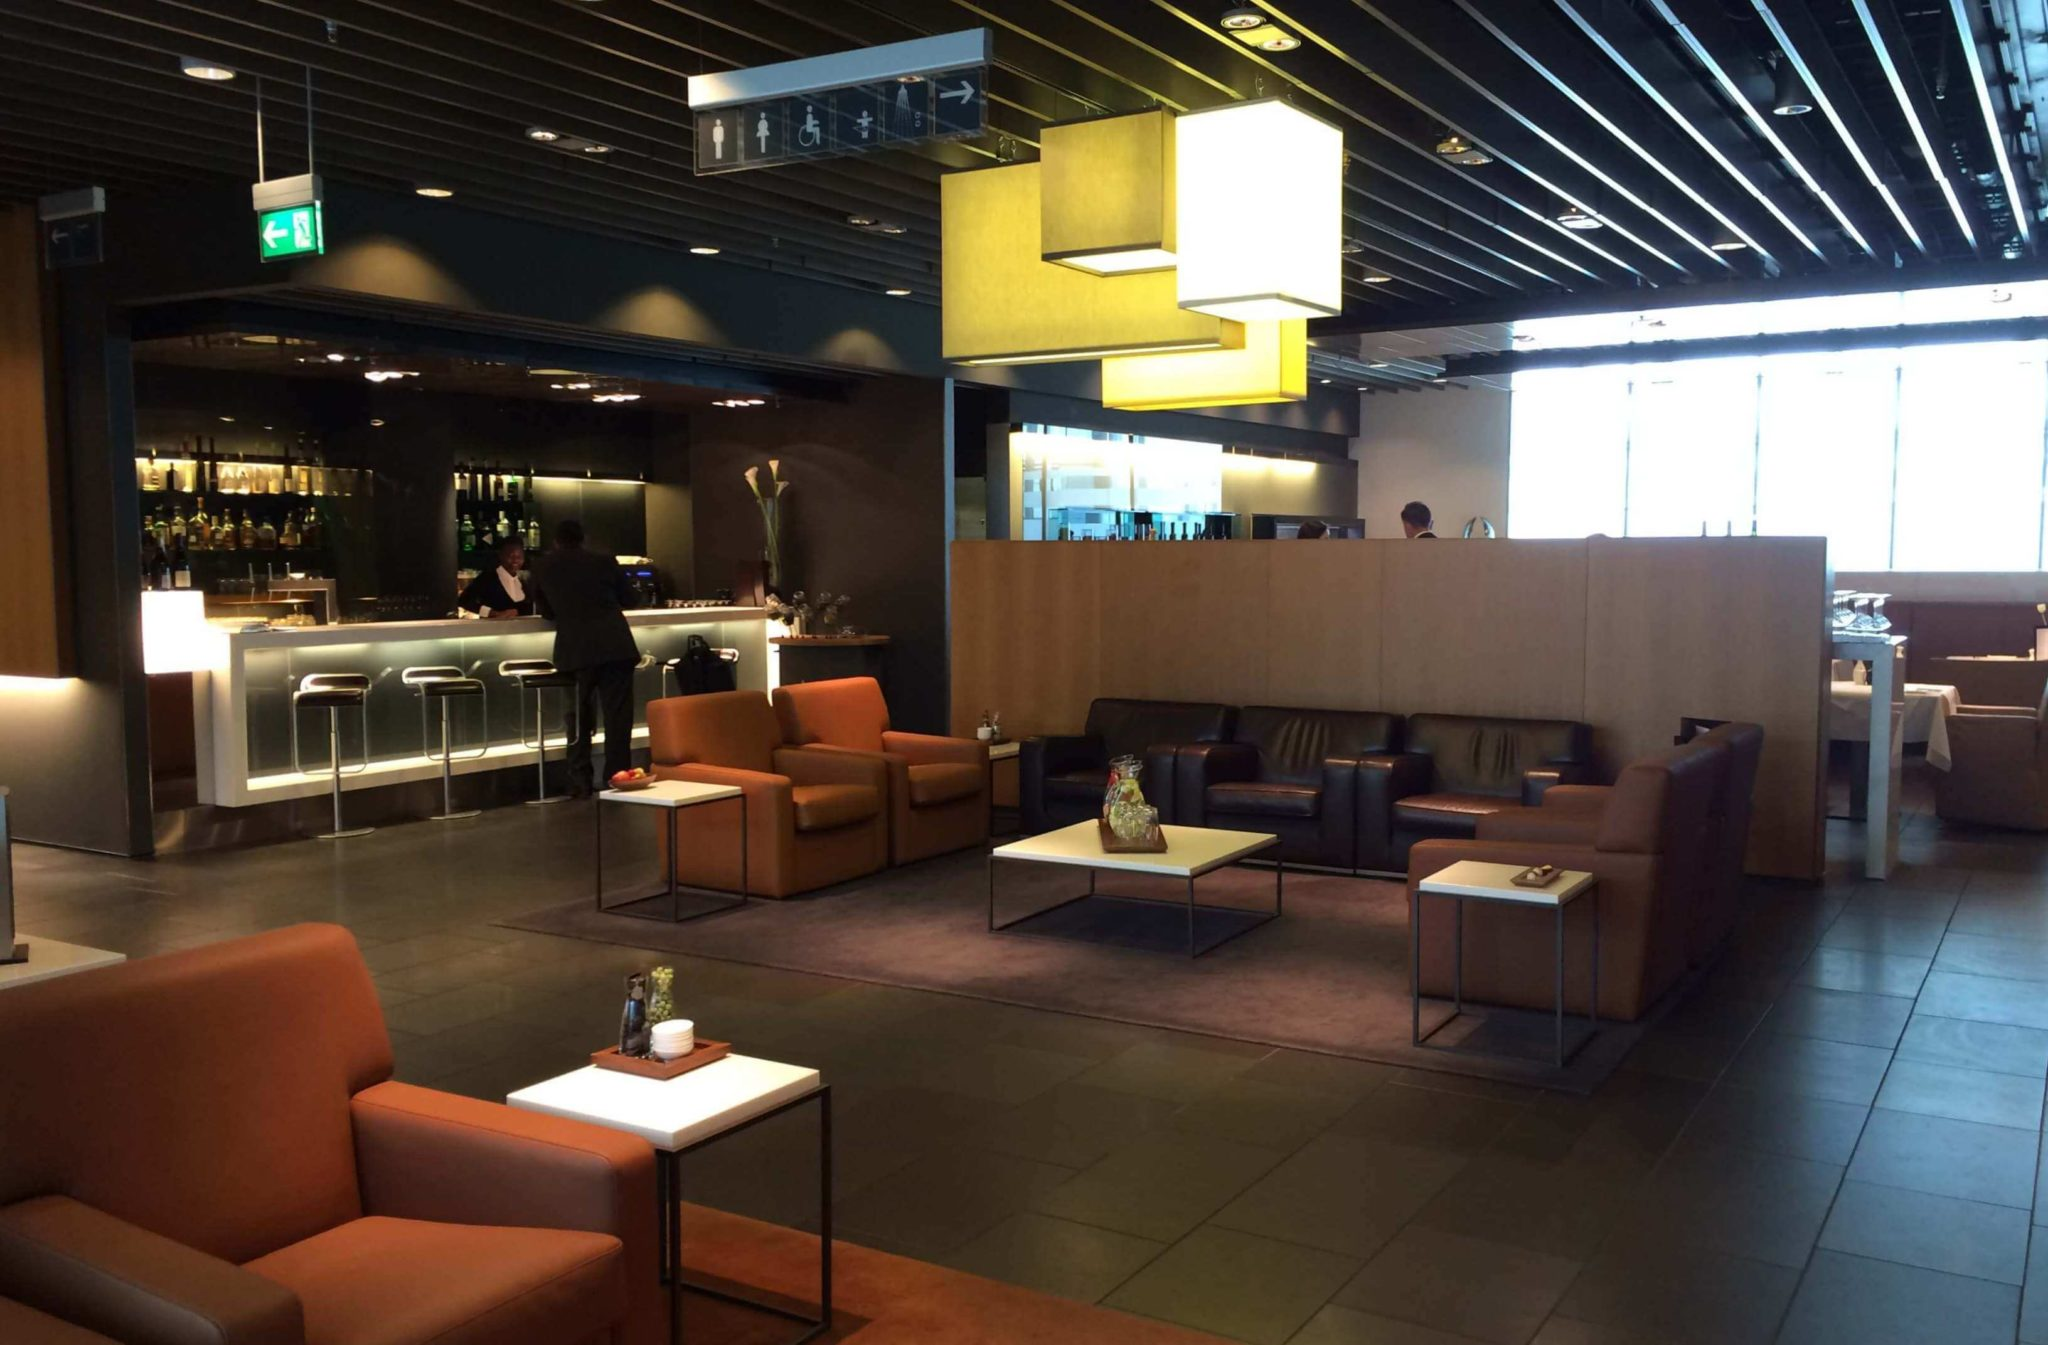 Lufthansa first class lounge, Munich